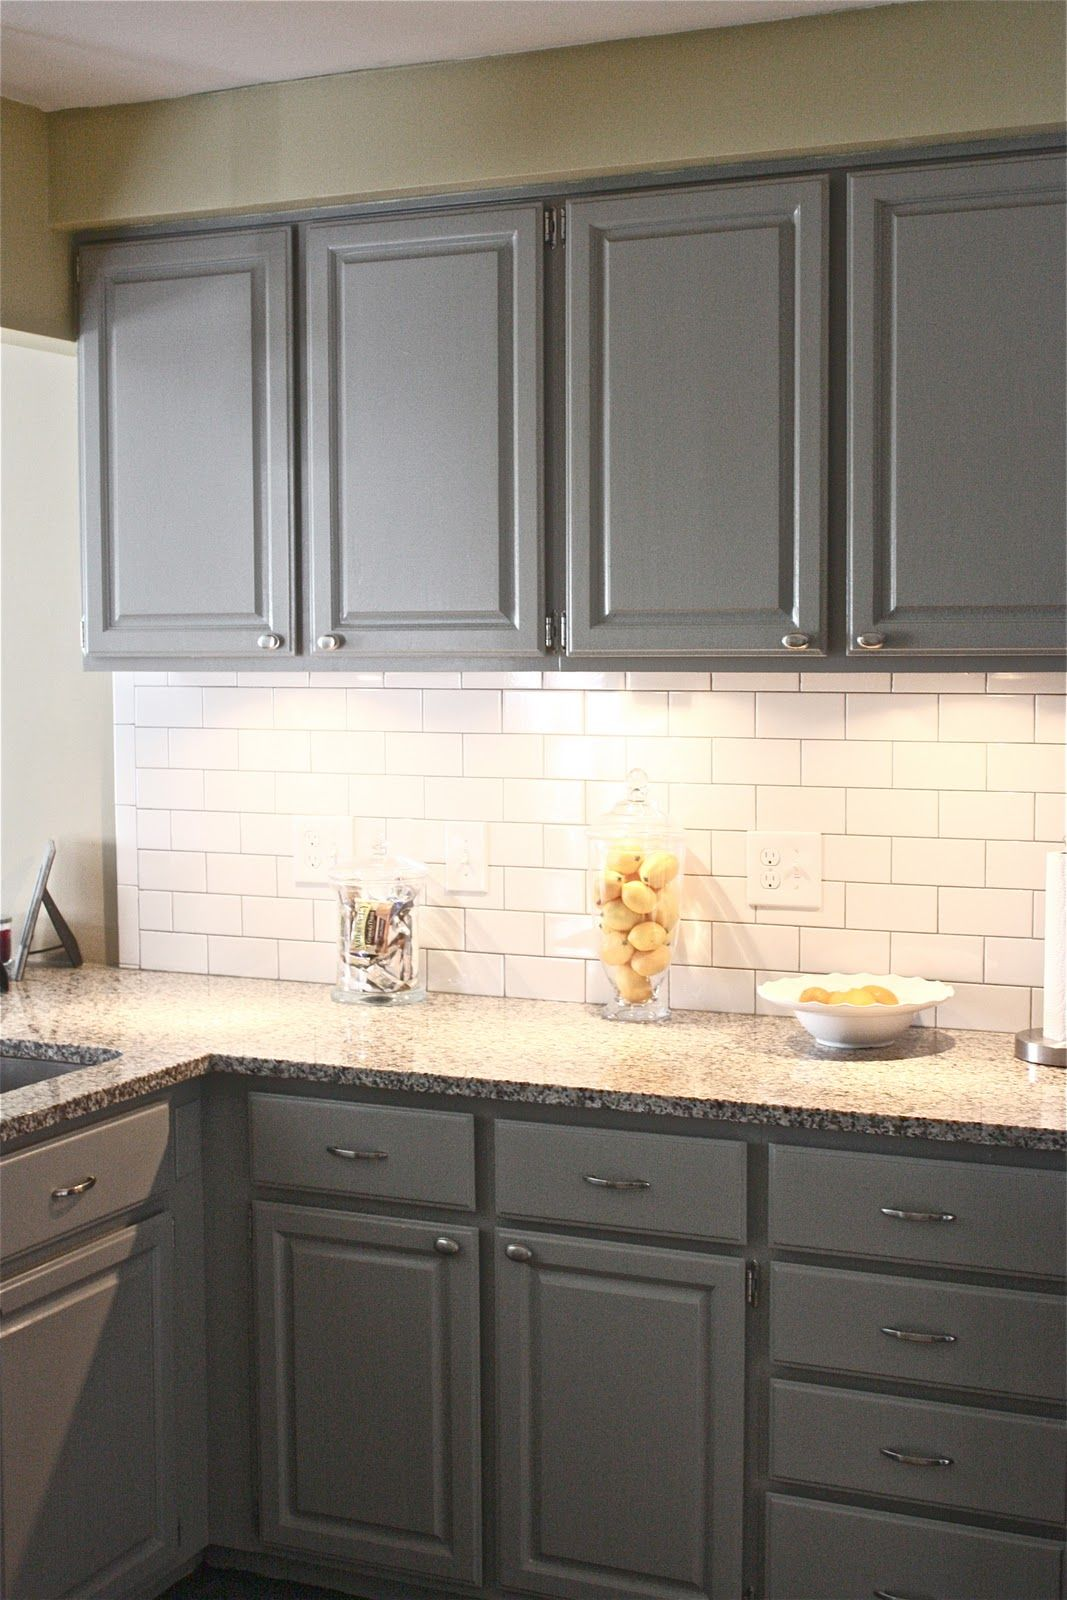 White Floor White Cabinets White Cabinets Corian Countertops With Tile Floor